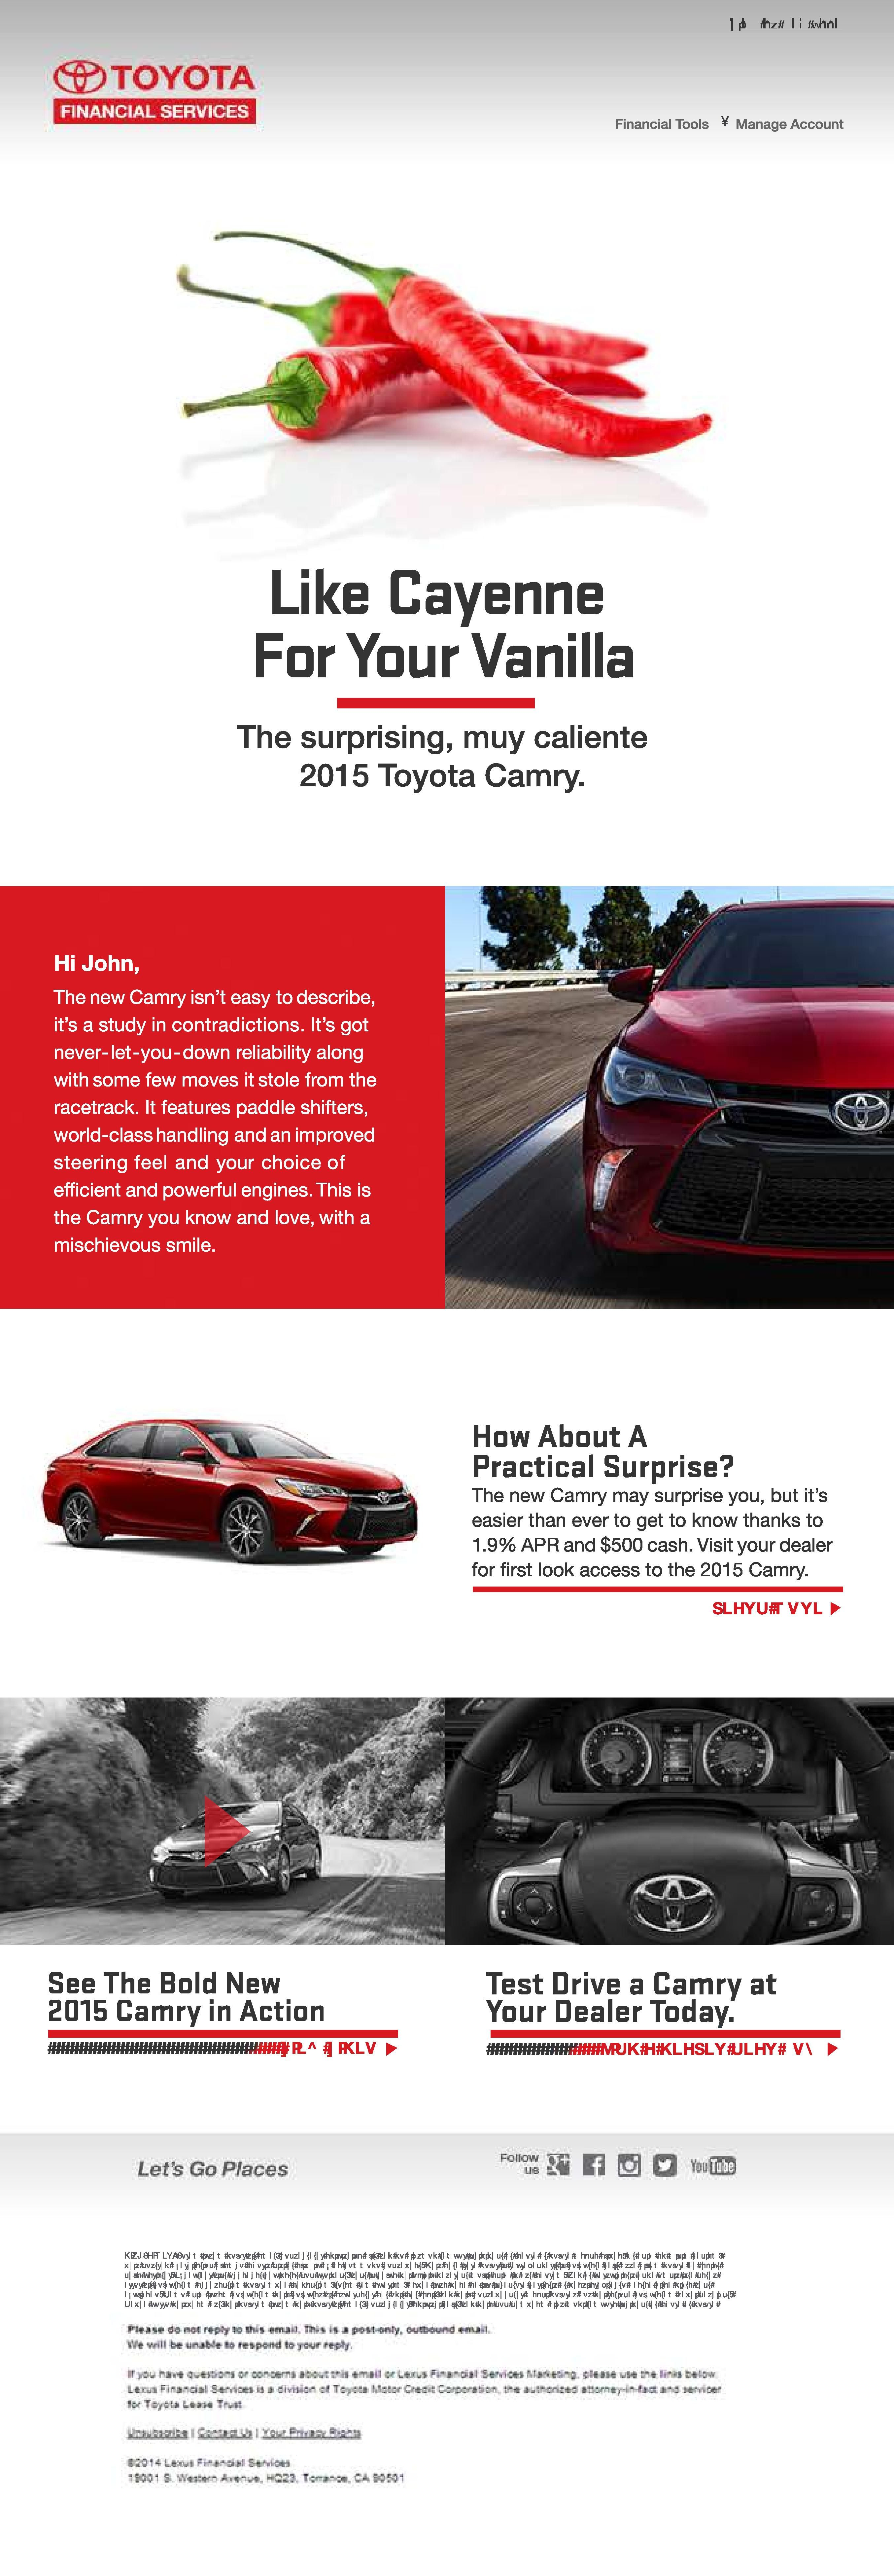 Email Design For Toyota Toyota 2015 Toyota Camry Camry 2015